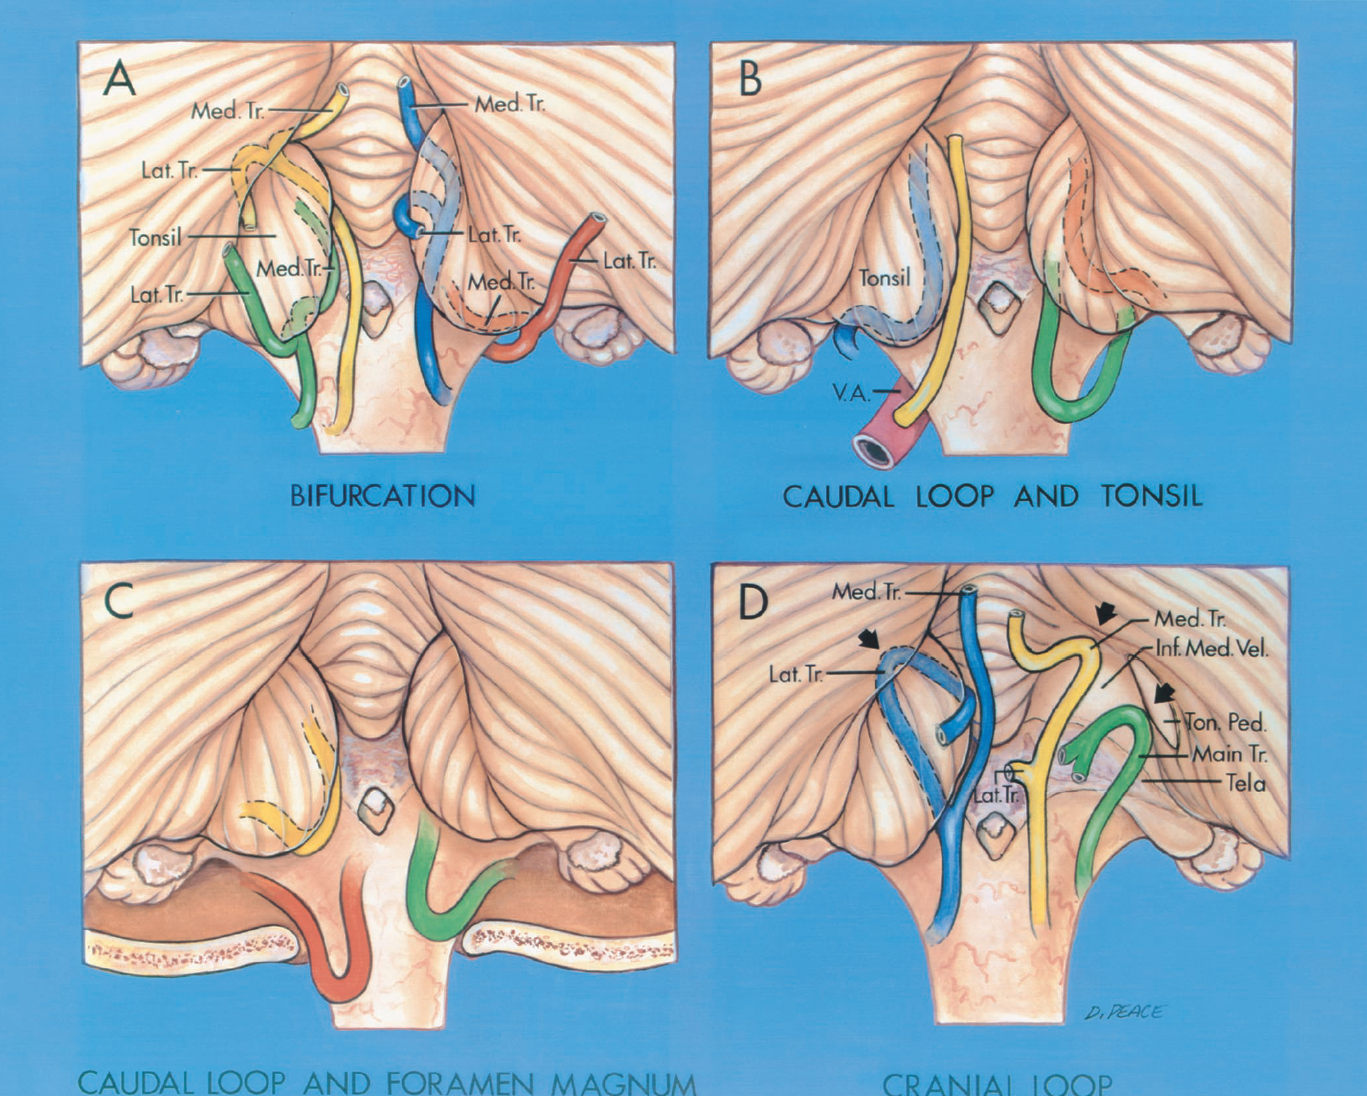 FIGURE 2.17. Locations of the PICA bifurcation, the caudal loops in relation to the tonsil and the foramen magnum, and the cranial loops. A, site of the bifurcation in relation to the tonsil. The main trunk of the PICA may bifurcate at any site along the margin of the tonsil. Inferolateral bifurcation (red): the lateral trunk passes upward lateral to the tonsil to reach the hemisphere, and the medial trunk passes along the anteromedial margin of the tonsil. Inferomedial bifurcation (green): the lateral trunk passes superolateral over the posterior margin of the tonsil to reach the hemispheric surface, and the medial trunk passes upward along the anteromedial margin of the tonsil. Superomedial bifurcation (blue): the lateral trunk passes posteriorly over the medial surface of the tonsil, and the medial trunk ascends to supply the vermis. Superolateral bifurcation (yellow): the lateral trunk passes out of the fissure between the tonsil and the hemisphere and proceeds to the hemispheric surface, and the medial trunk ascends to supply the vermis. B, location of the caudal loop in relation to the tonsil. The tonsillomedullary segment often formed a caudally convex loop (blue, orange, green) as it passed medially across the posterior surface of the medulla. This caudal part of the tonsillomedullary segment was located between 10.0 mm inferior and 13.0 mm superior (average, 1.6 mm superior) to the caudal tip of the tonsil. This loop could be found superior to (orange), inferior to (green), or at the level of (blue) the caudal tip of the tonsil. In some cases (yellow), the PICA ascended from the vertebral artery (V.A.) or took another course to reach the medial surface of the tonsil without forming a caudal loop. C, relation of the caudal loop to the foramen magnum. Most caudal loops were superior to the foramen magnum (yellow), but they could be inferior to (red) or at the level of (green) the foramen magnum. The caudal loop was located between 7.0 mm inferior and 18.0 mm 